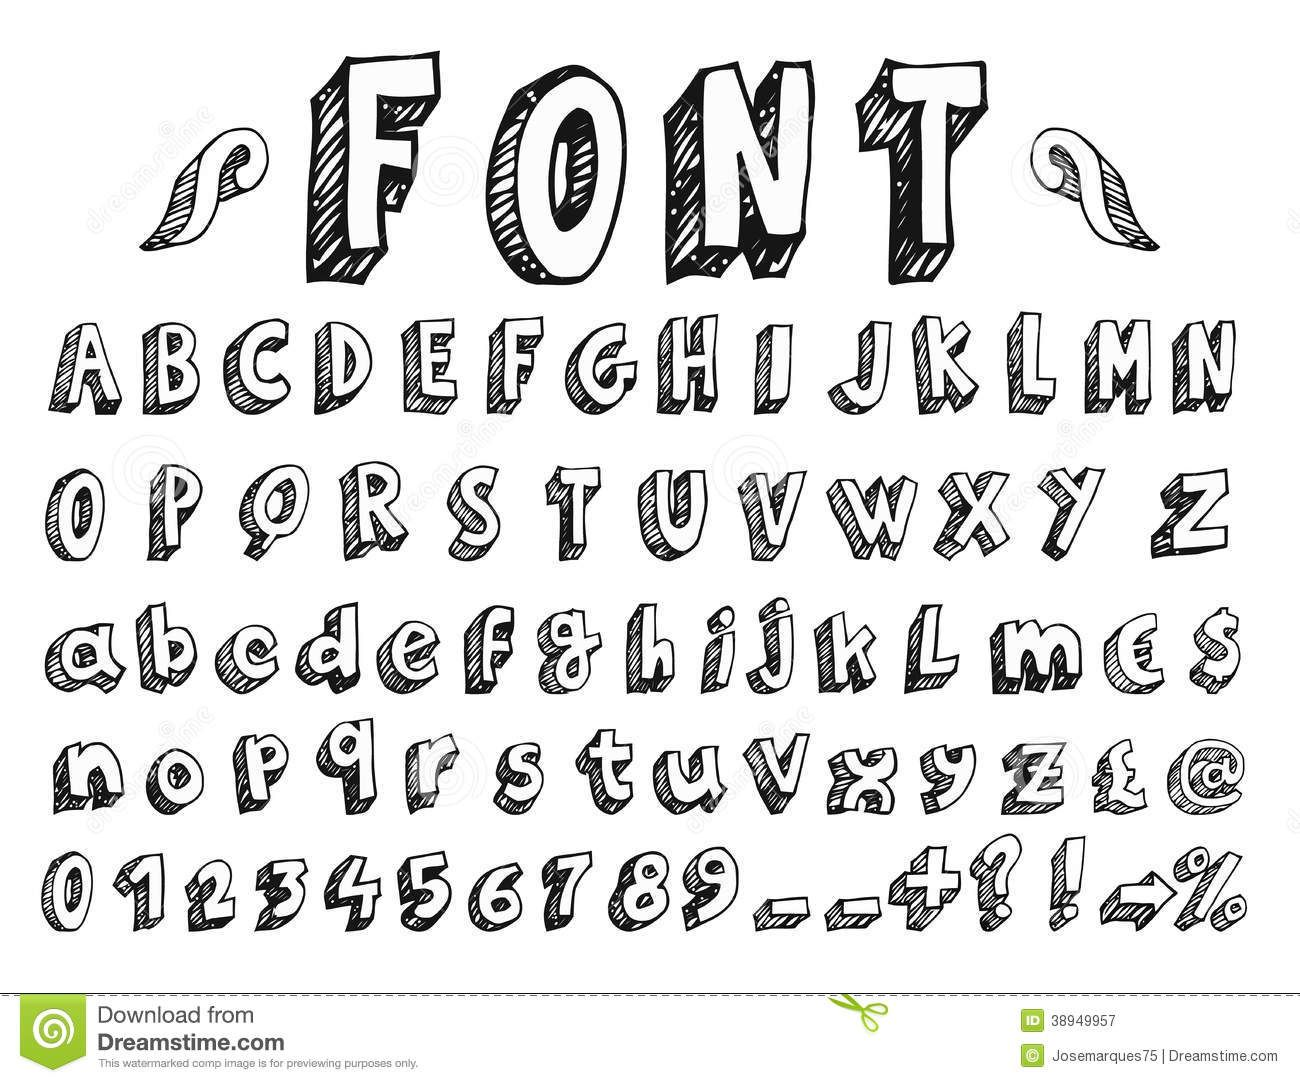 S Dreamstime Royalty Free Stock Photography Handwritten Font Hand Drawn Alphabet